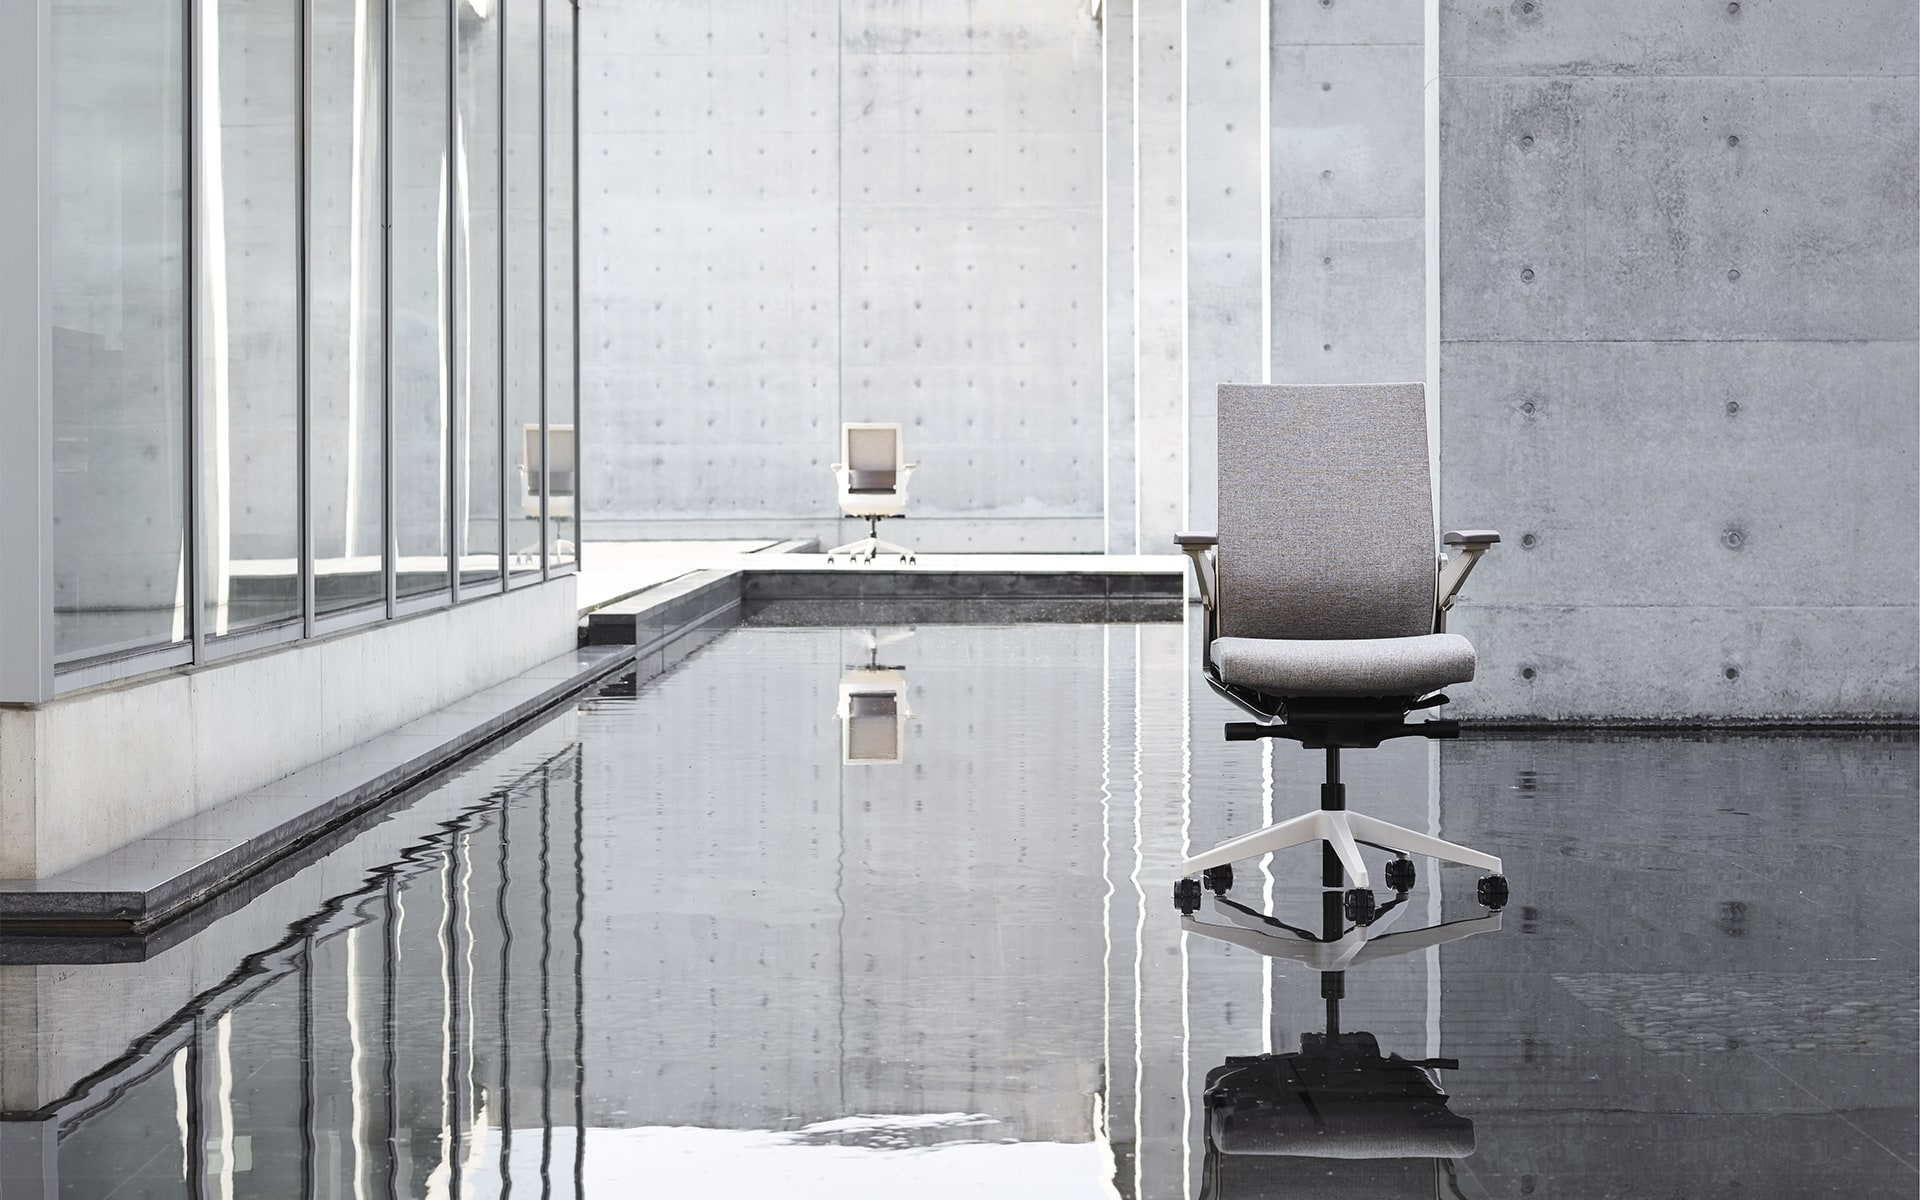 Gray Sidiz T80 executive office chairs by ITO Design on water surface in minimalist outdoor area